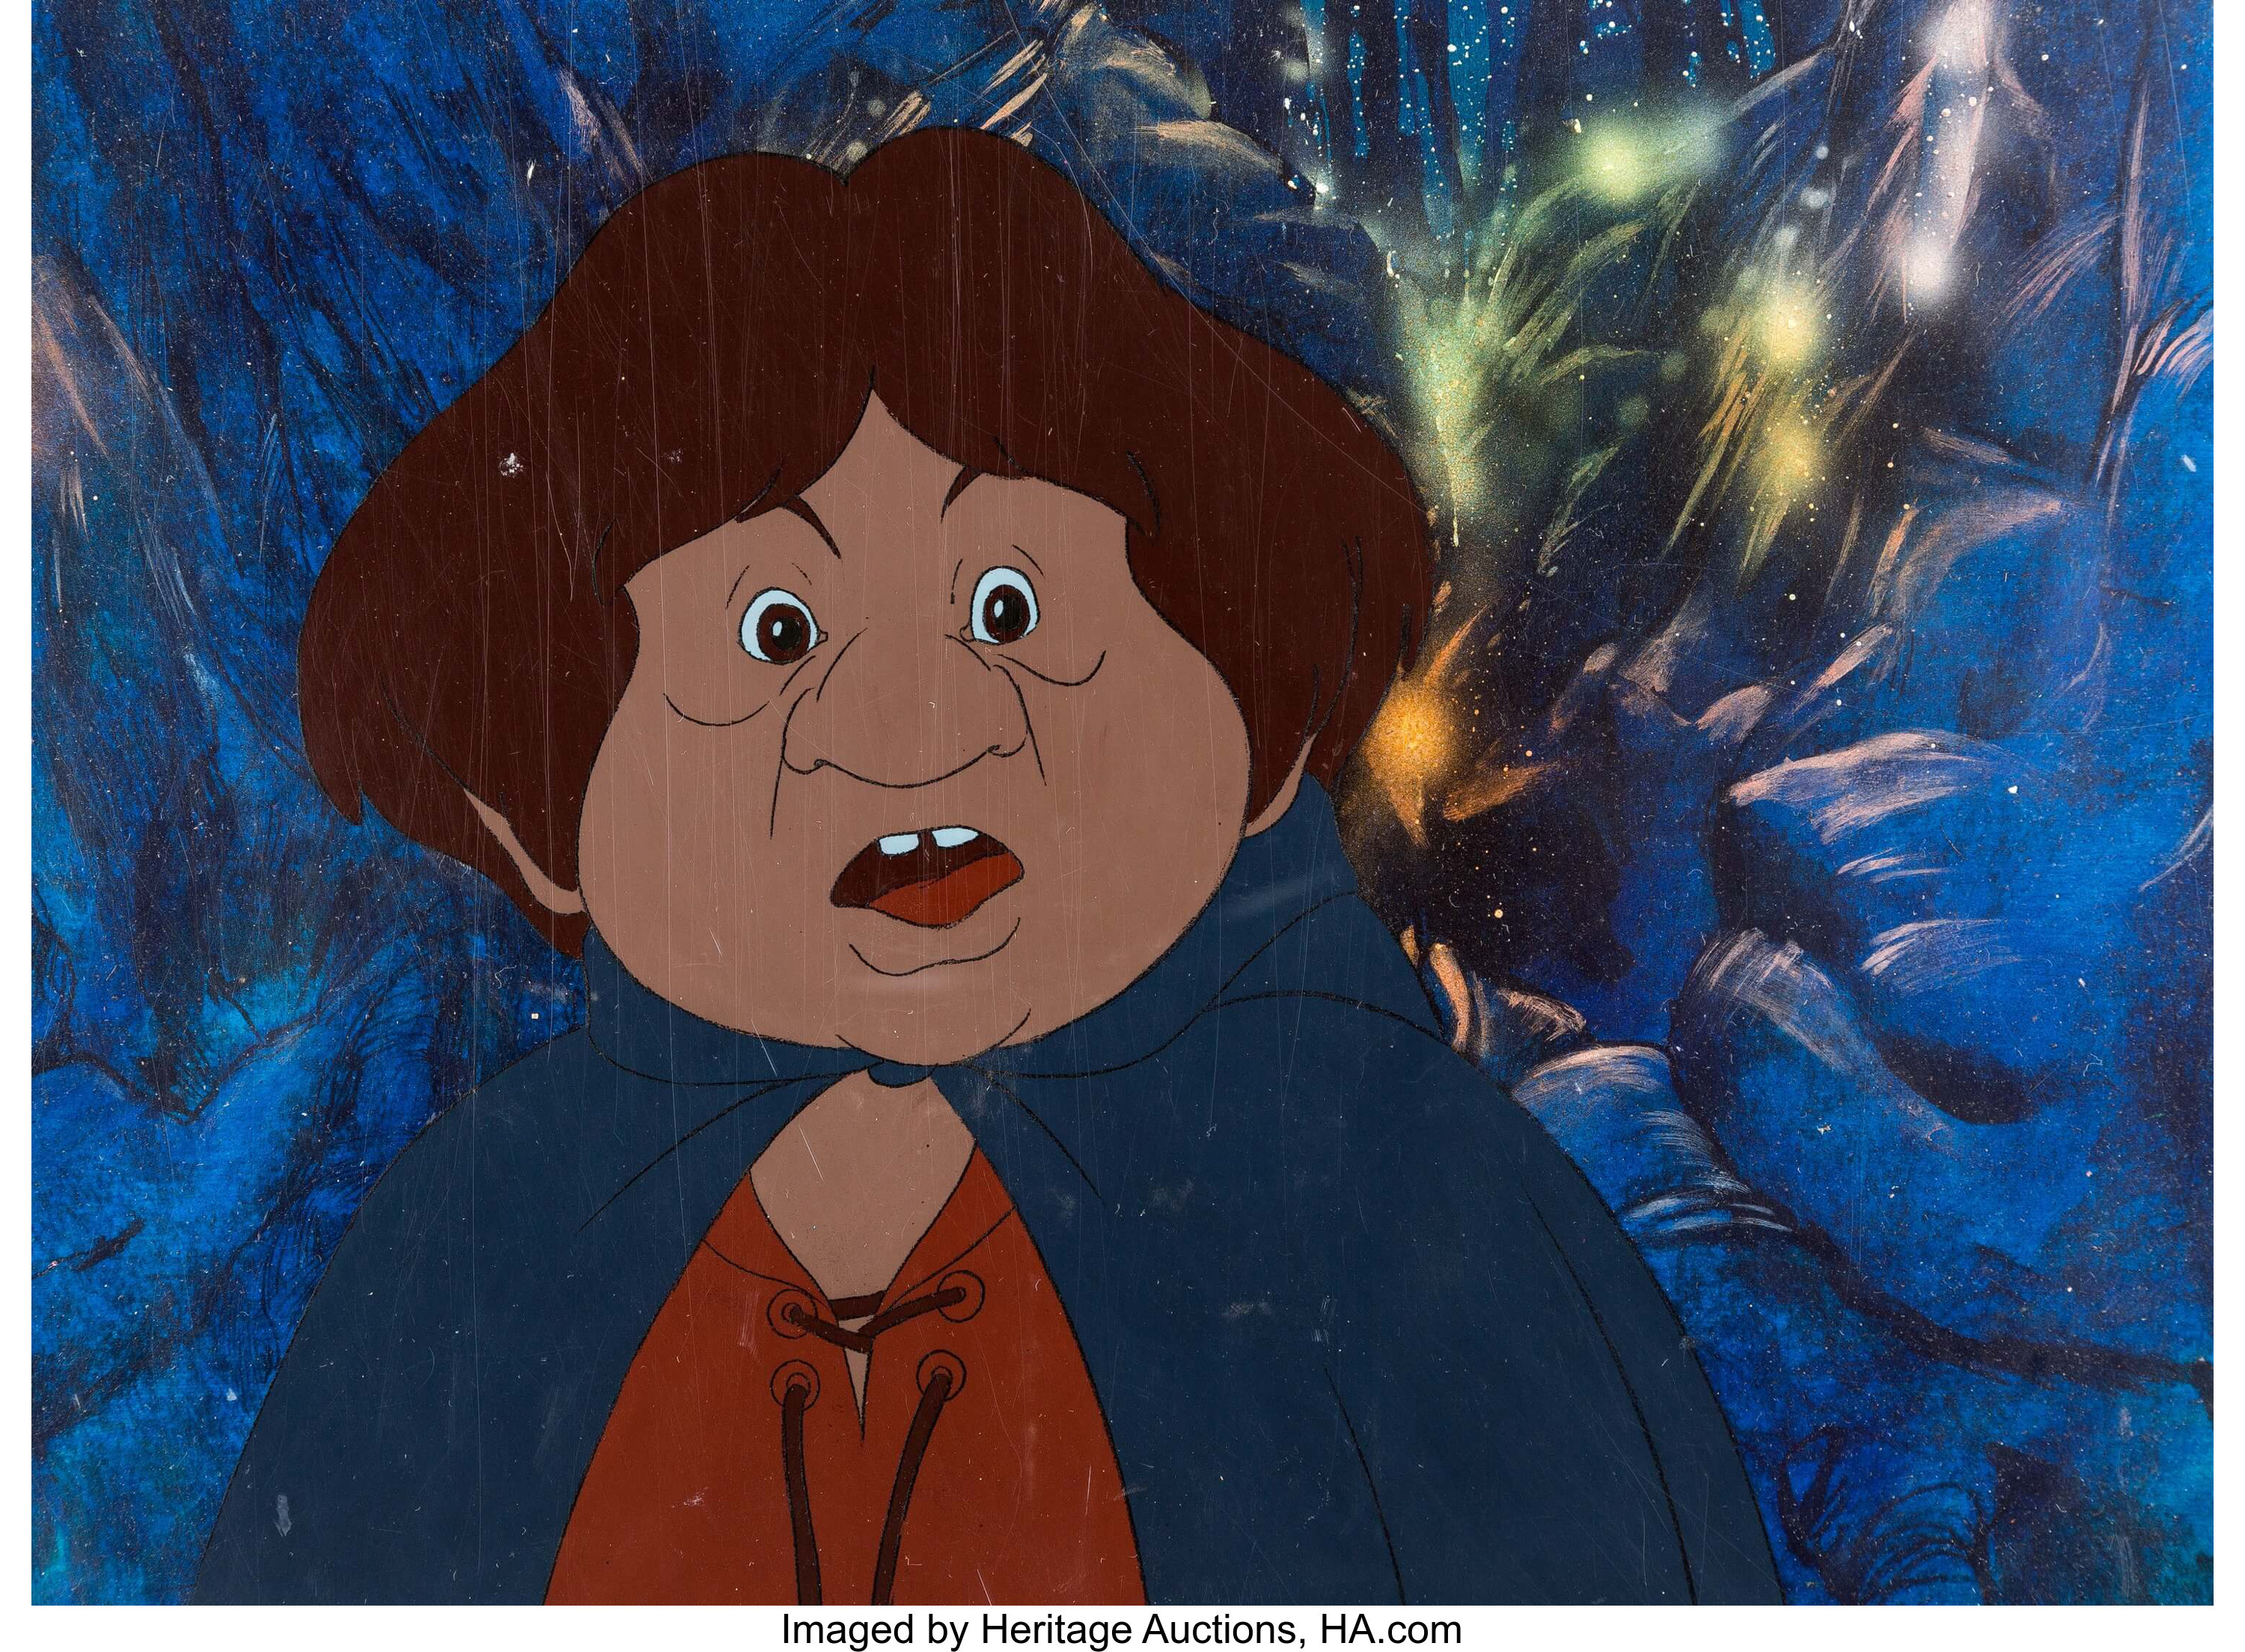 The Lord Of The Rings Samwise Gamgee Production Cel And Master Lot 13199 Heritage Auctions